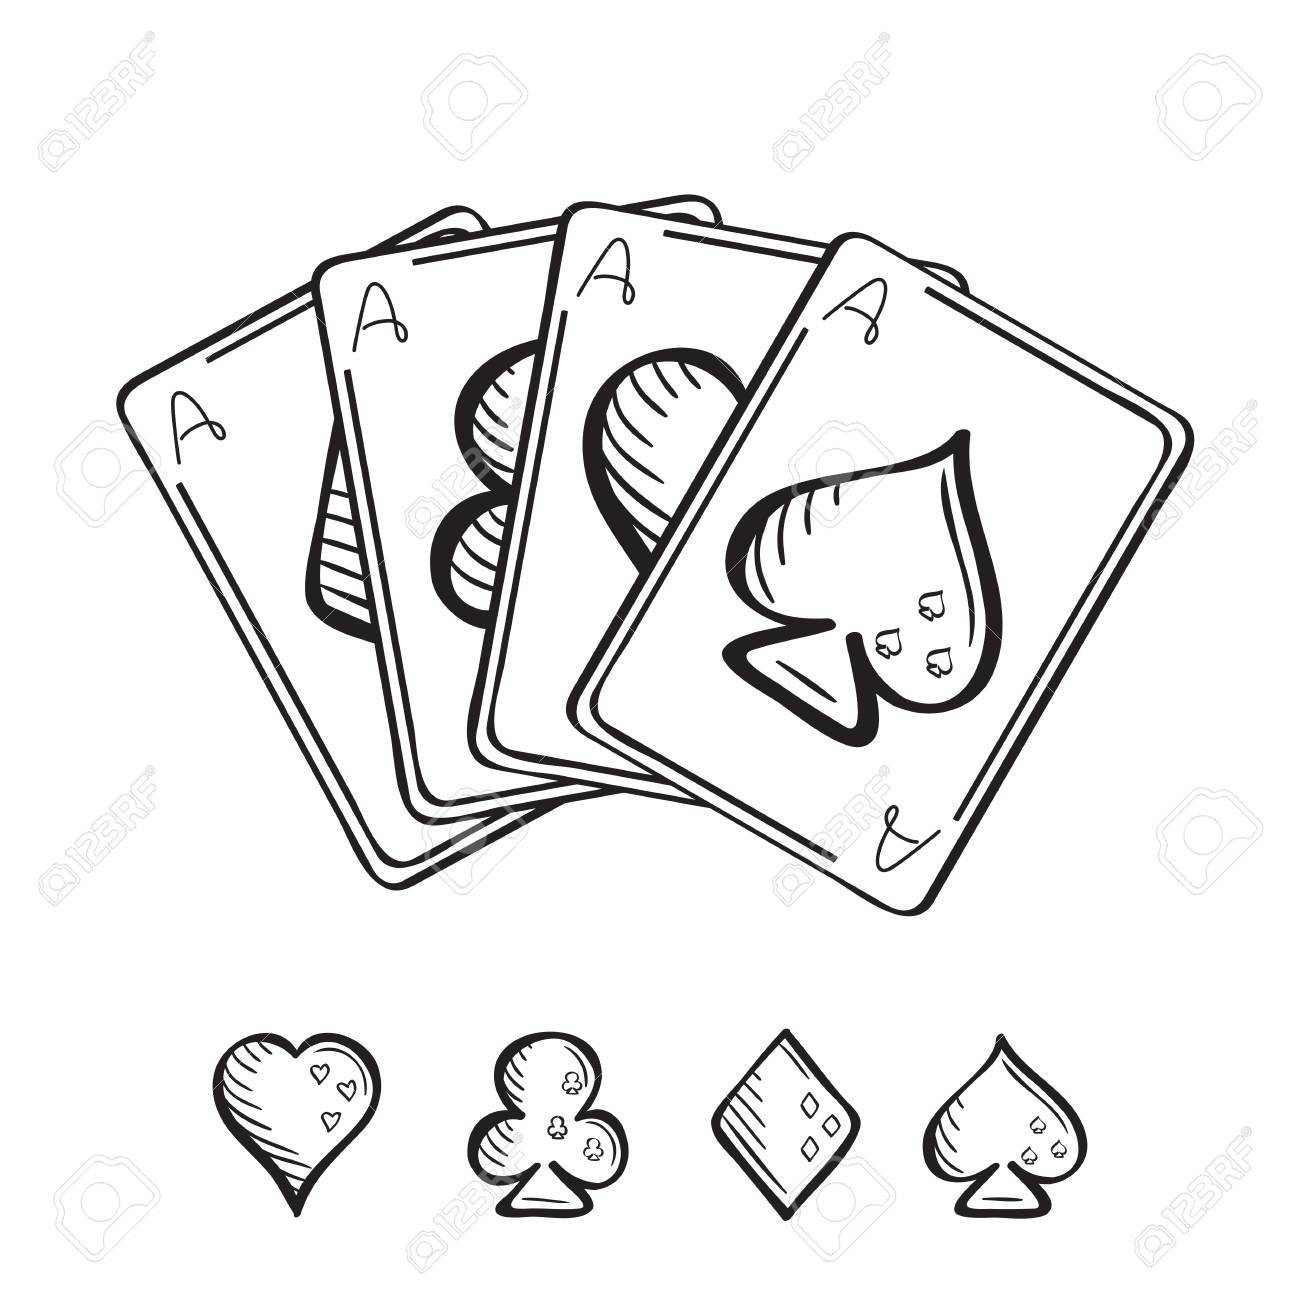 Deck Of Cards Drawing At Getdrawings Com Free For